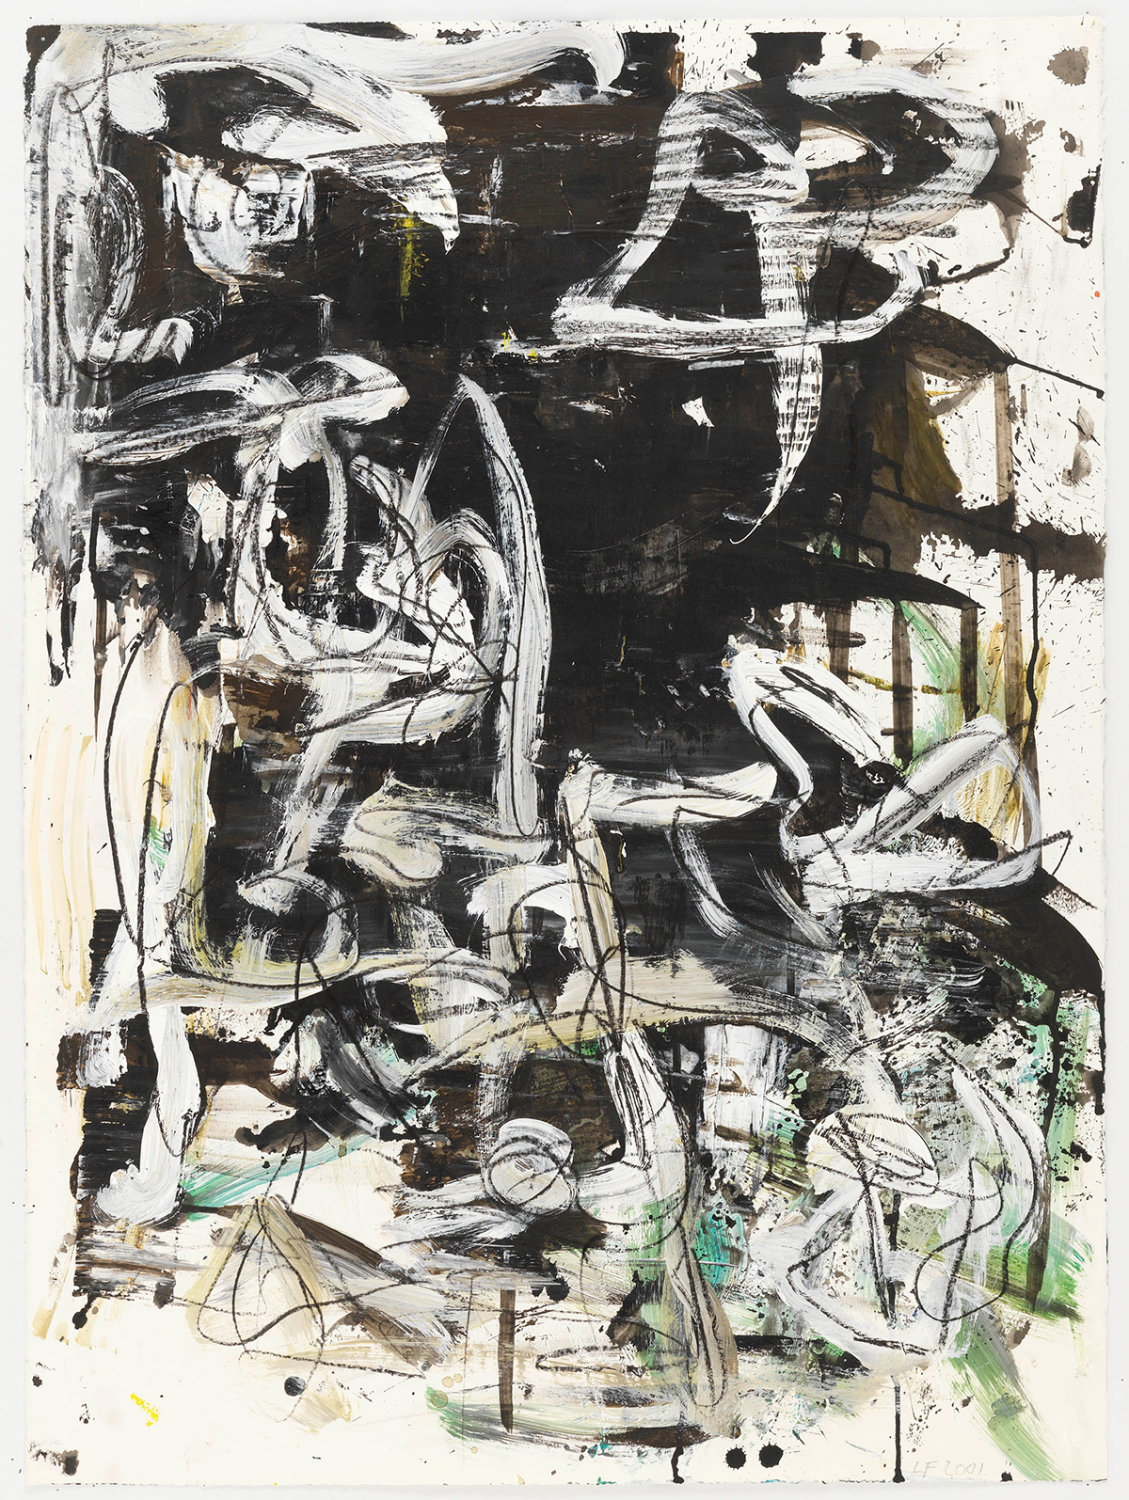 Charcoal drawing with paint. Black paint has been applied toward the top, then removed to reveal curved lines beneath. Toward the bottom are speckles of bright colors that give the painting a lightness and vibrancy beneath the darker field above.